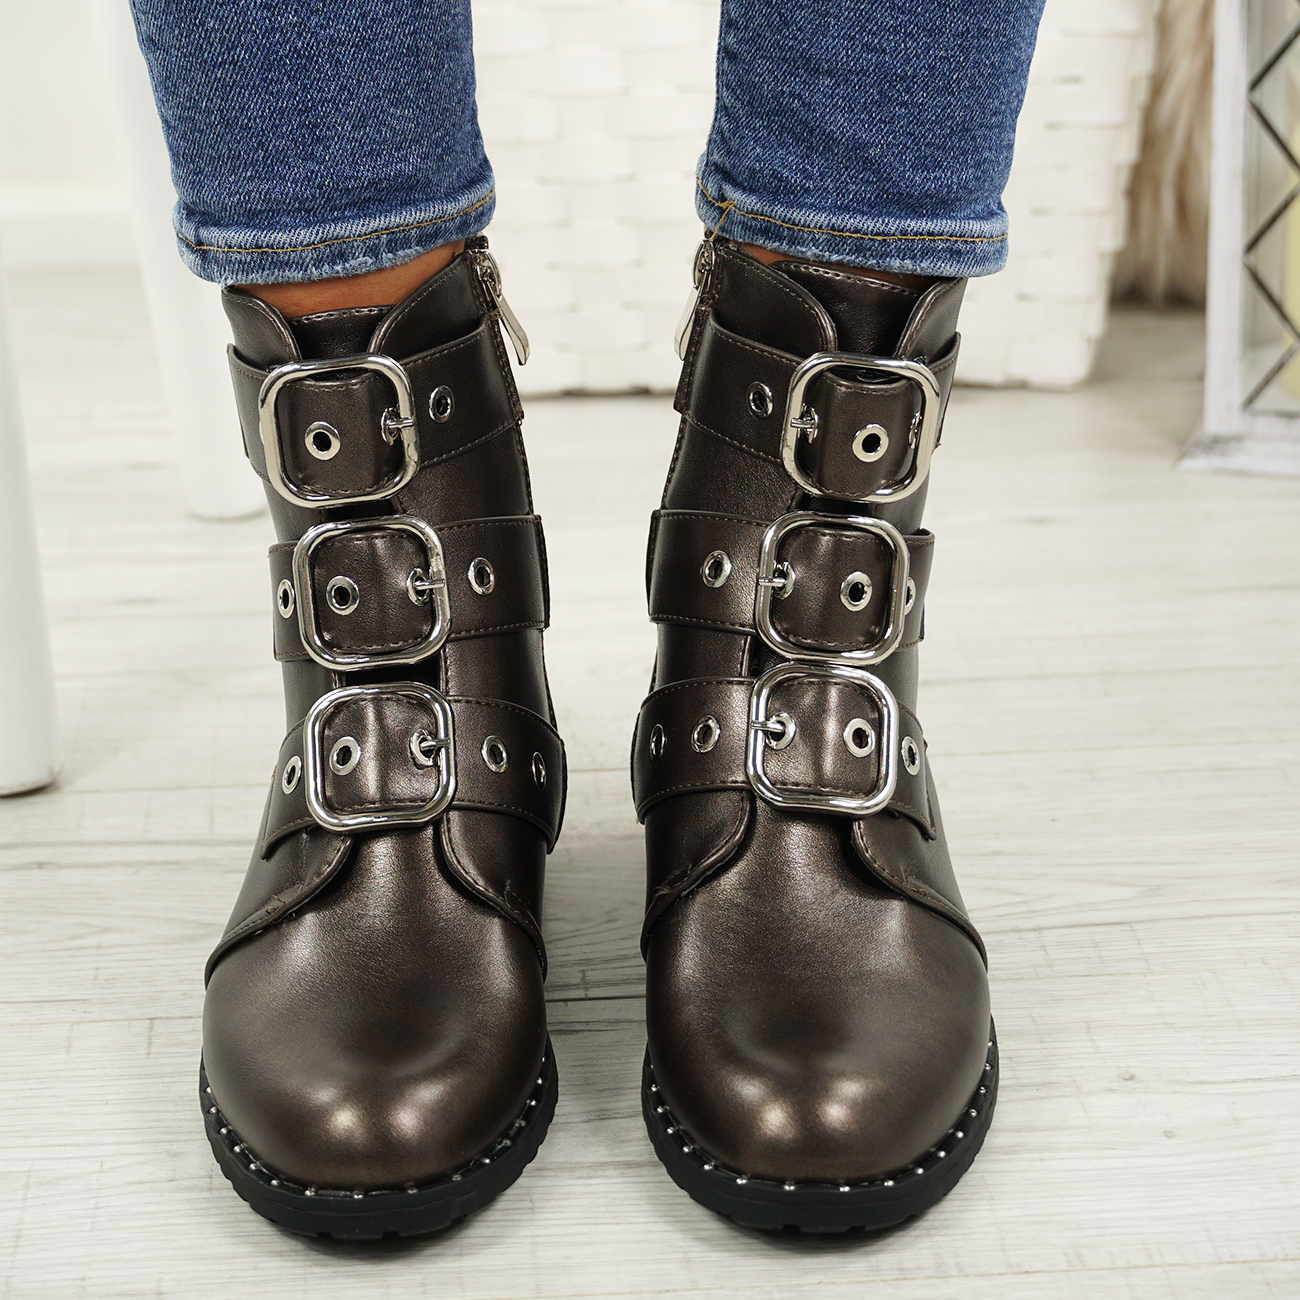 LADIES-WOMENS-BIKER-ANKLE-BOOTS-ZIP-STUDDED-LOW-HEEL-COMFY-SHOES-SIZES thumbnail 18